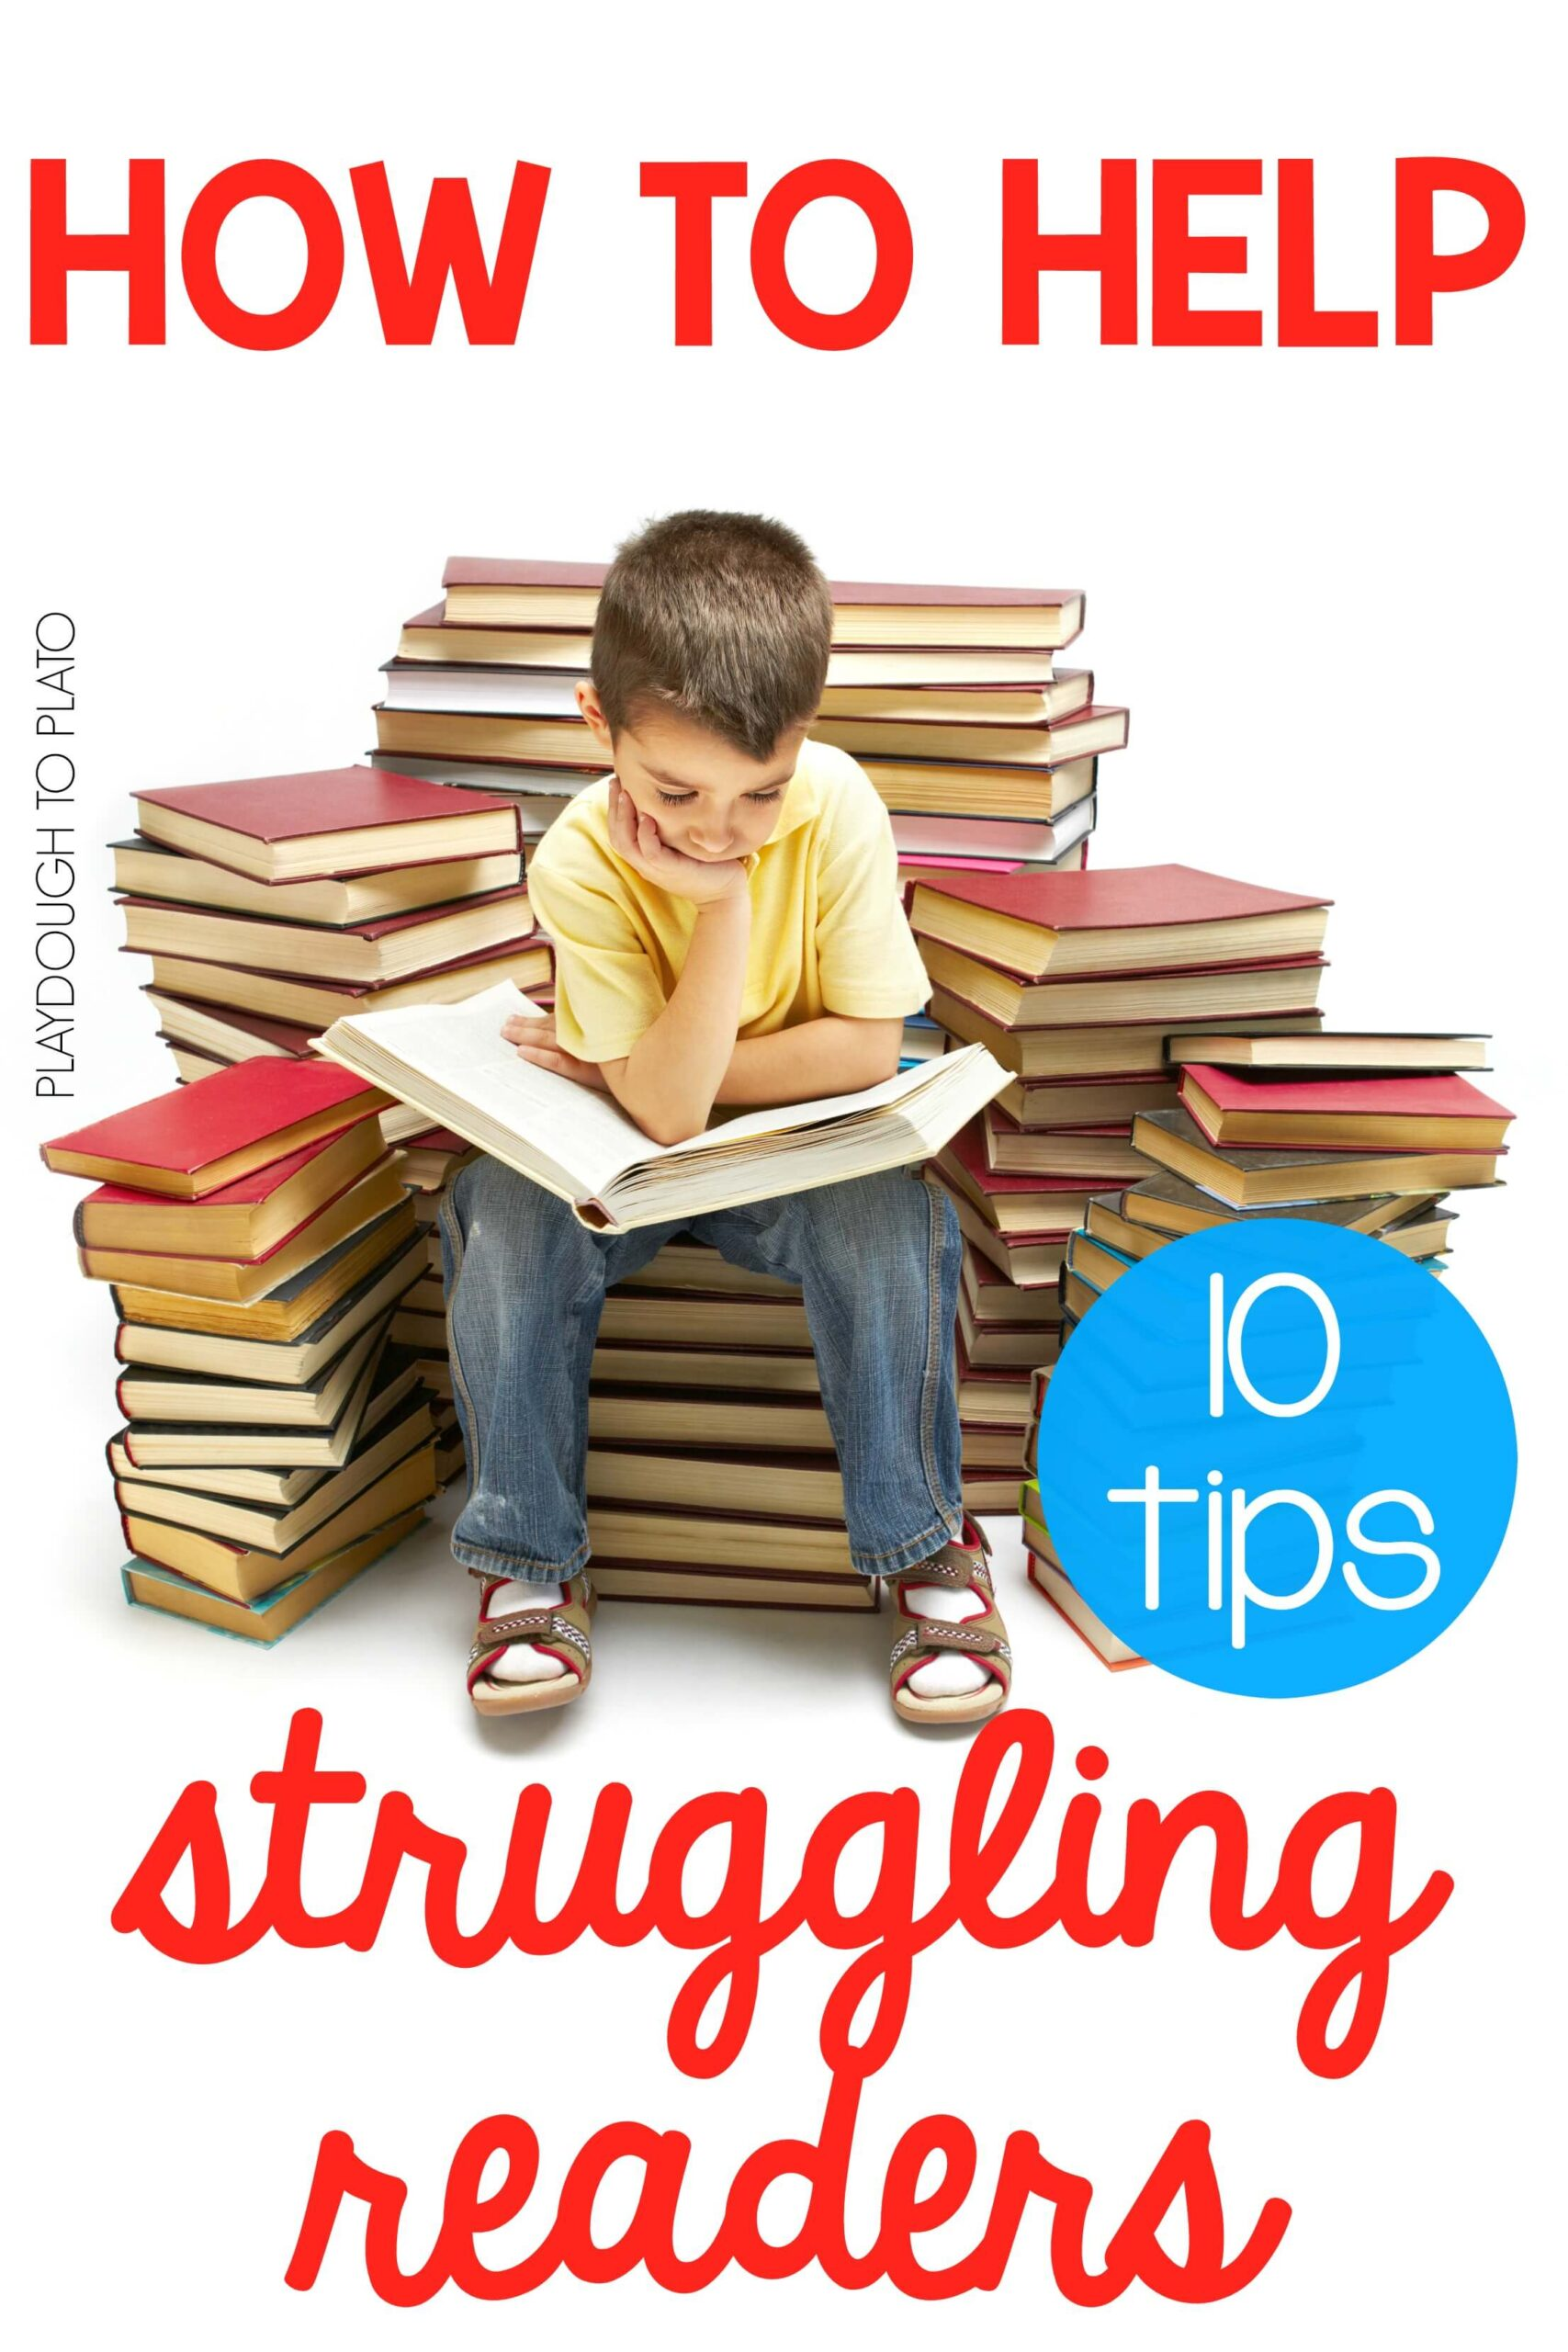 10 Ways to Help Struggling Readers